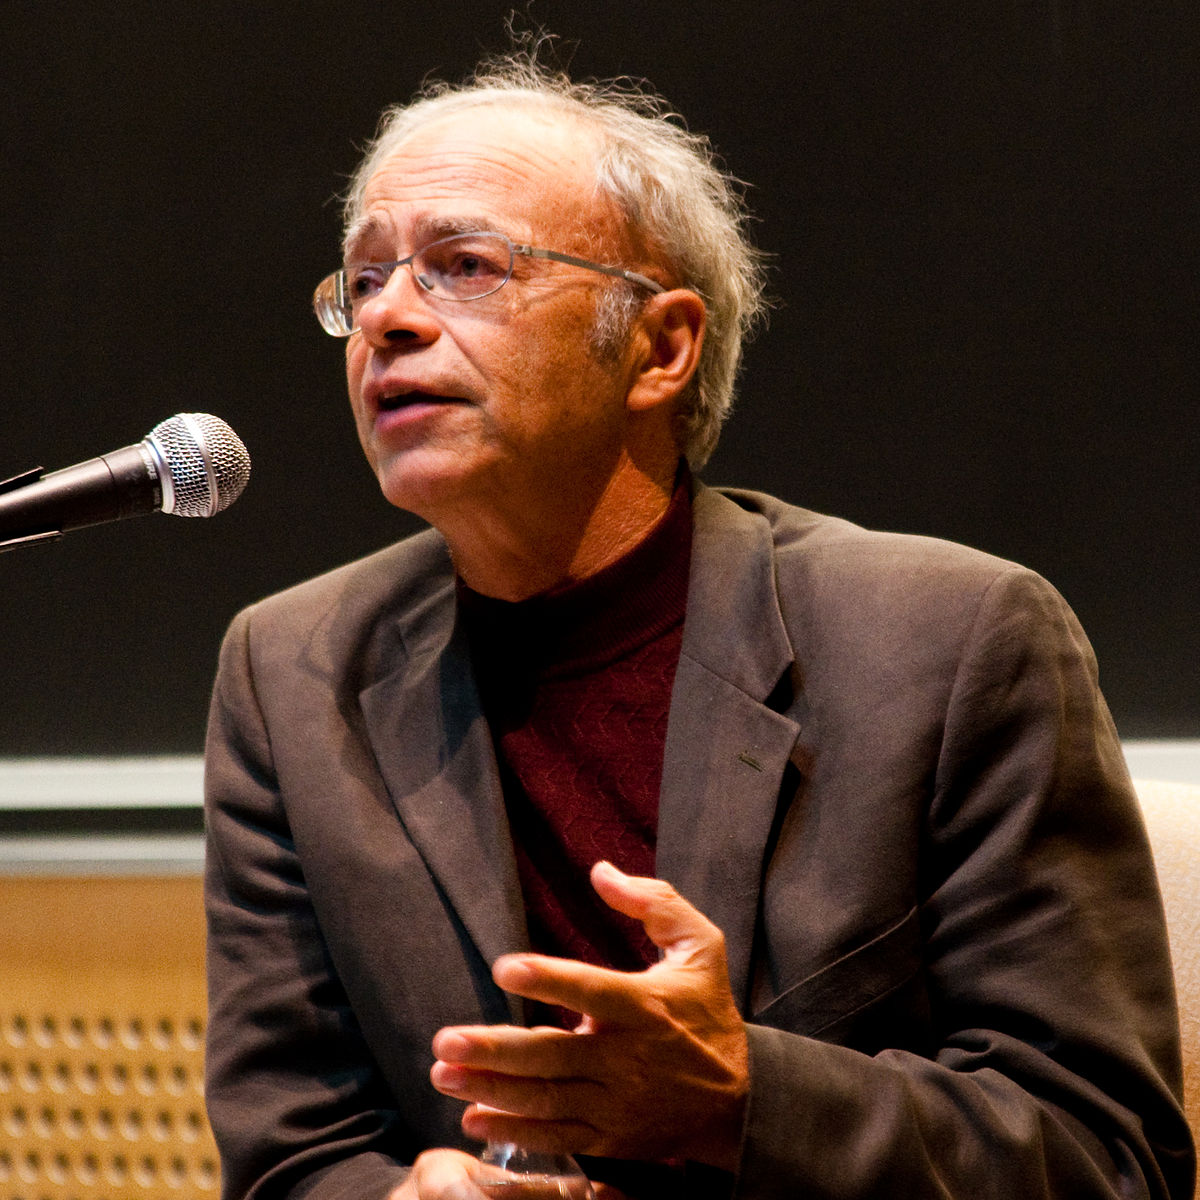 peter singer quotes on life